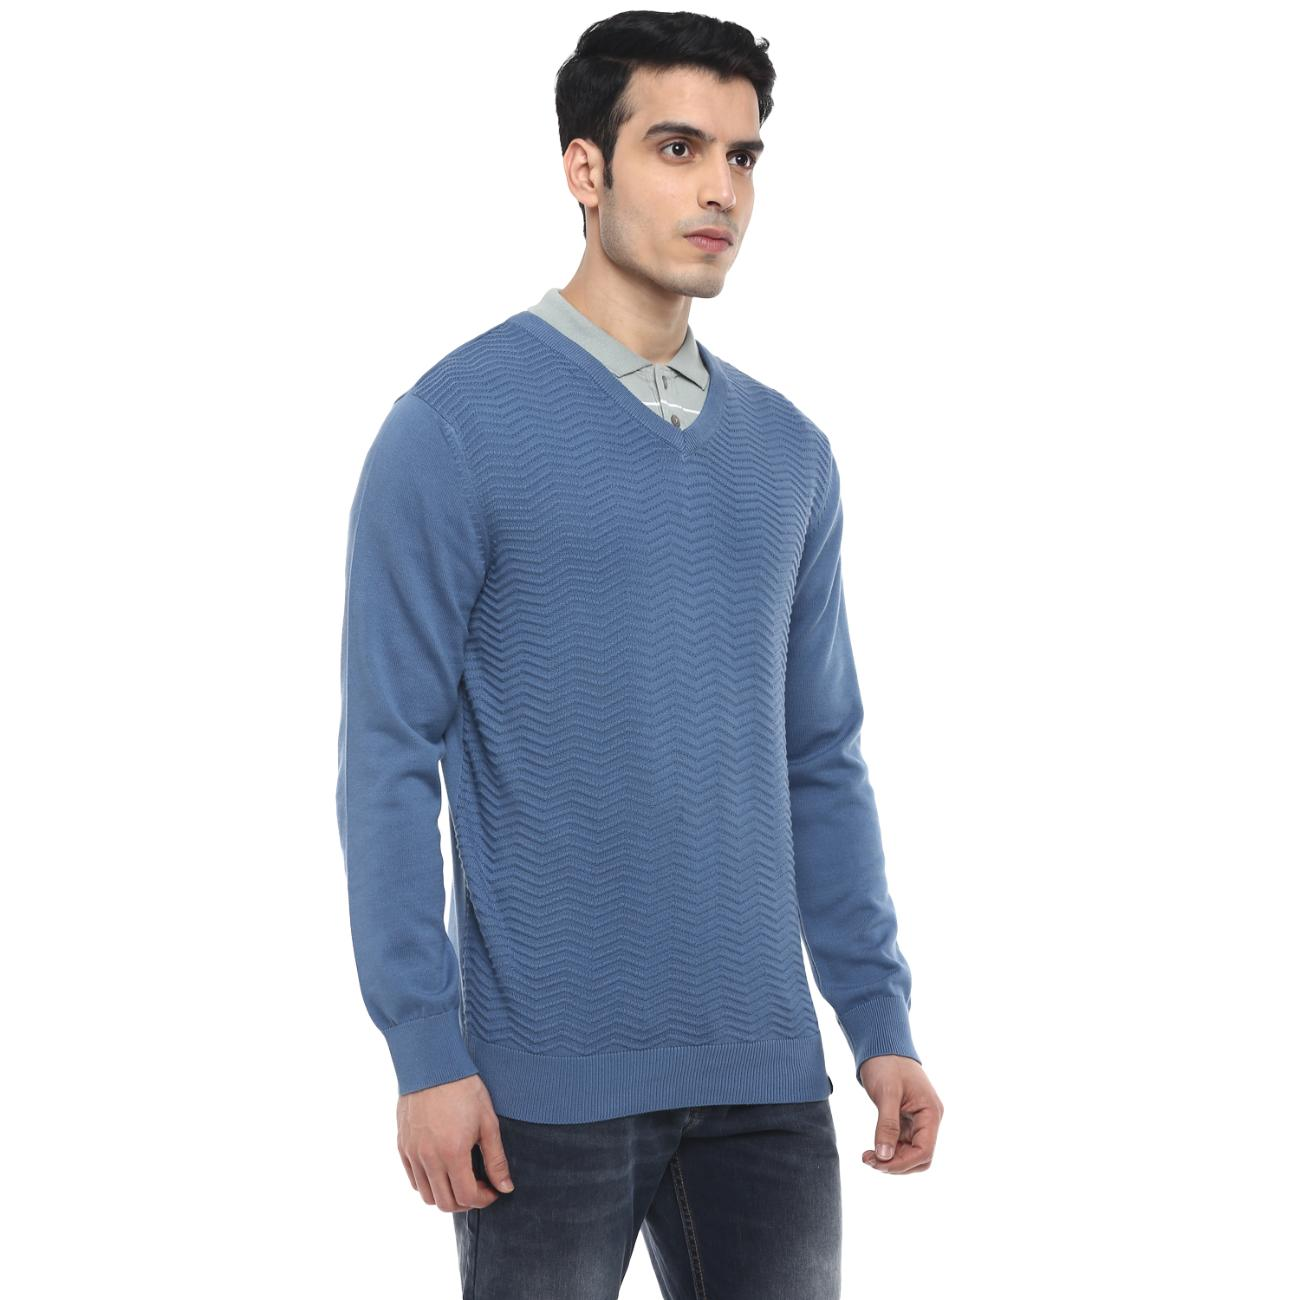 Purchase Red Chief's Blue Casual Sweater